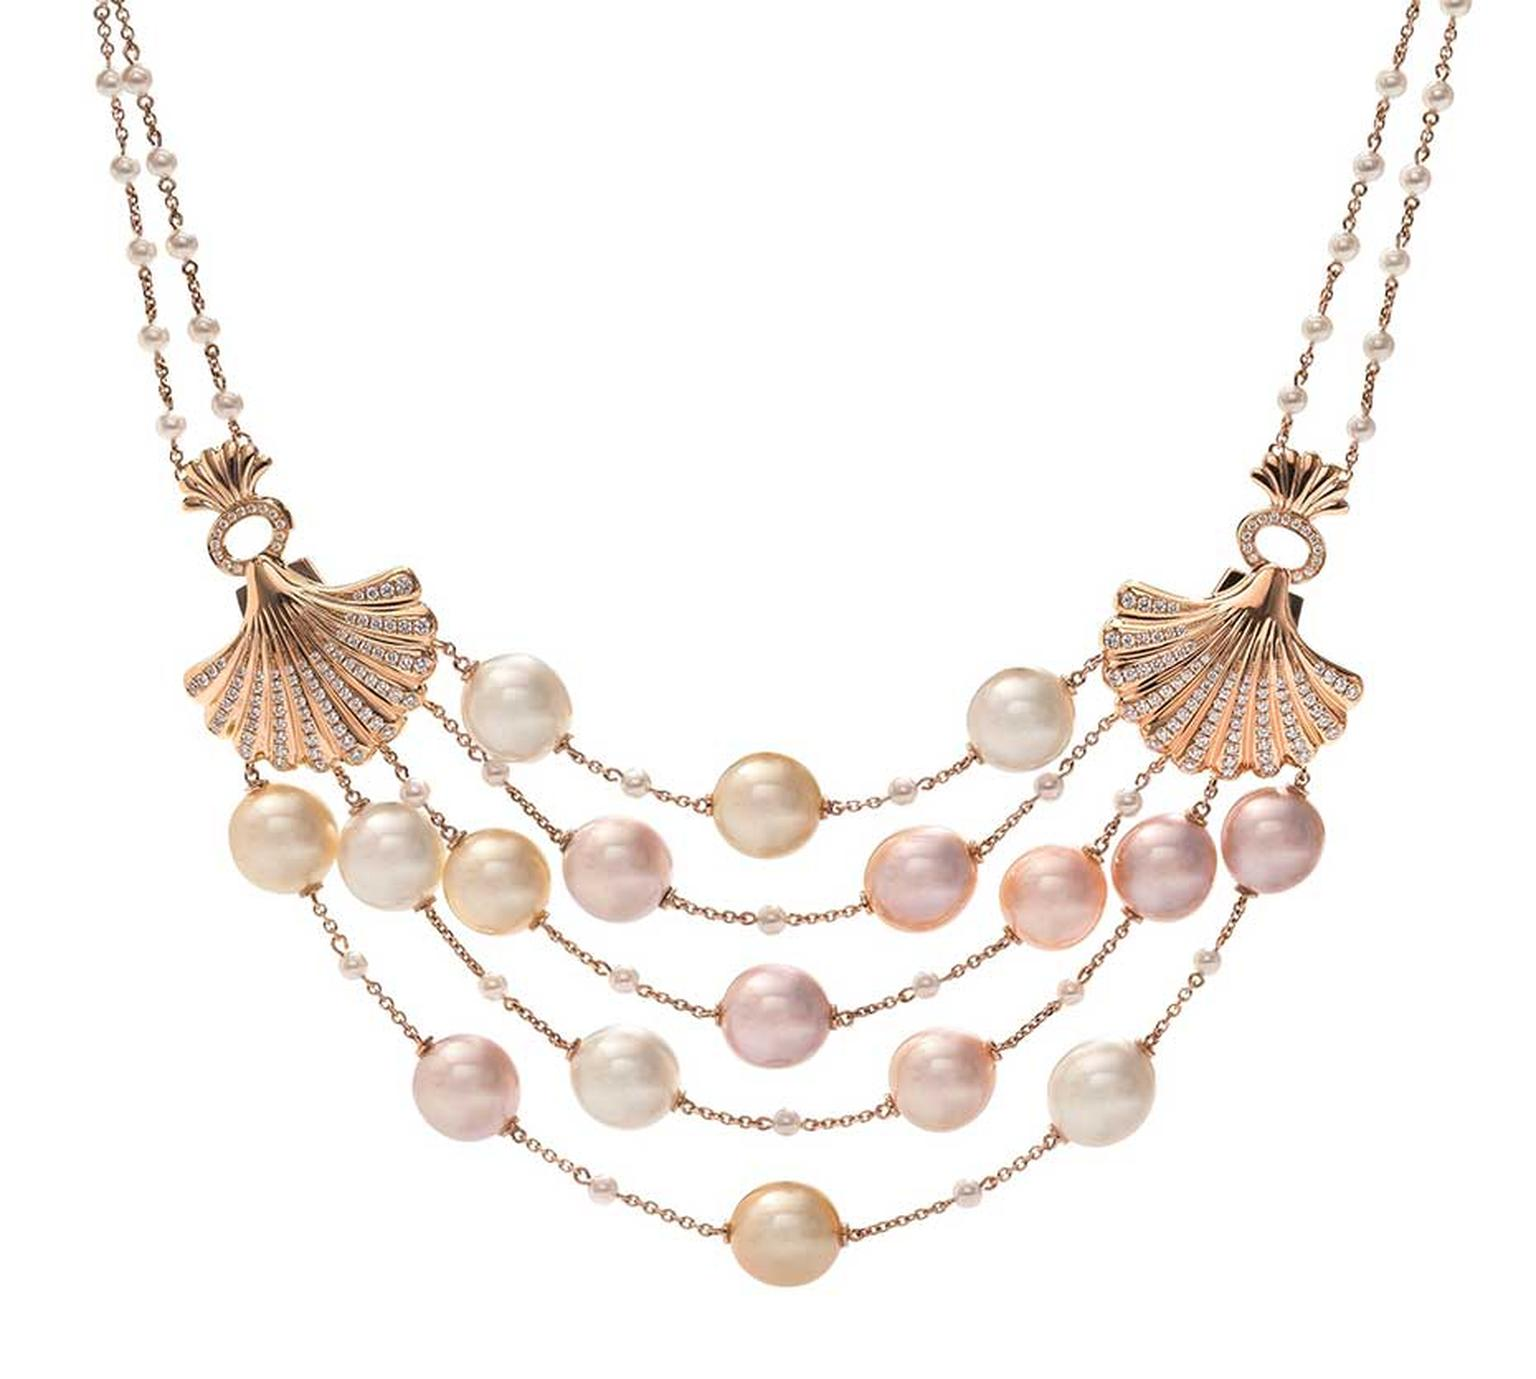 Boodles Deep Sea Treasure necklace with pink South Sea and freshwater pearls strung in rows between golden shells.